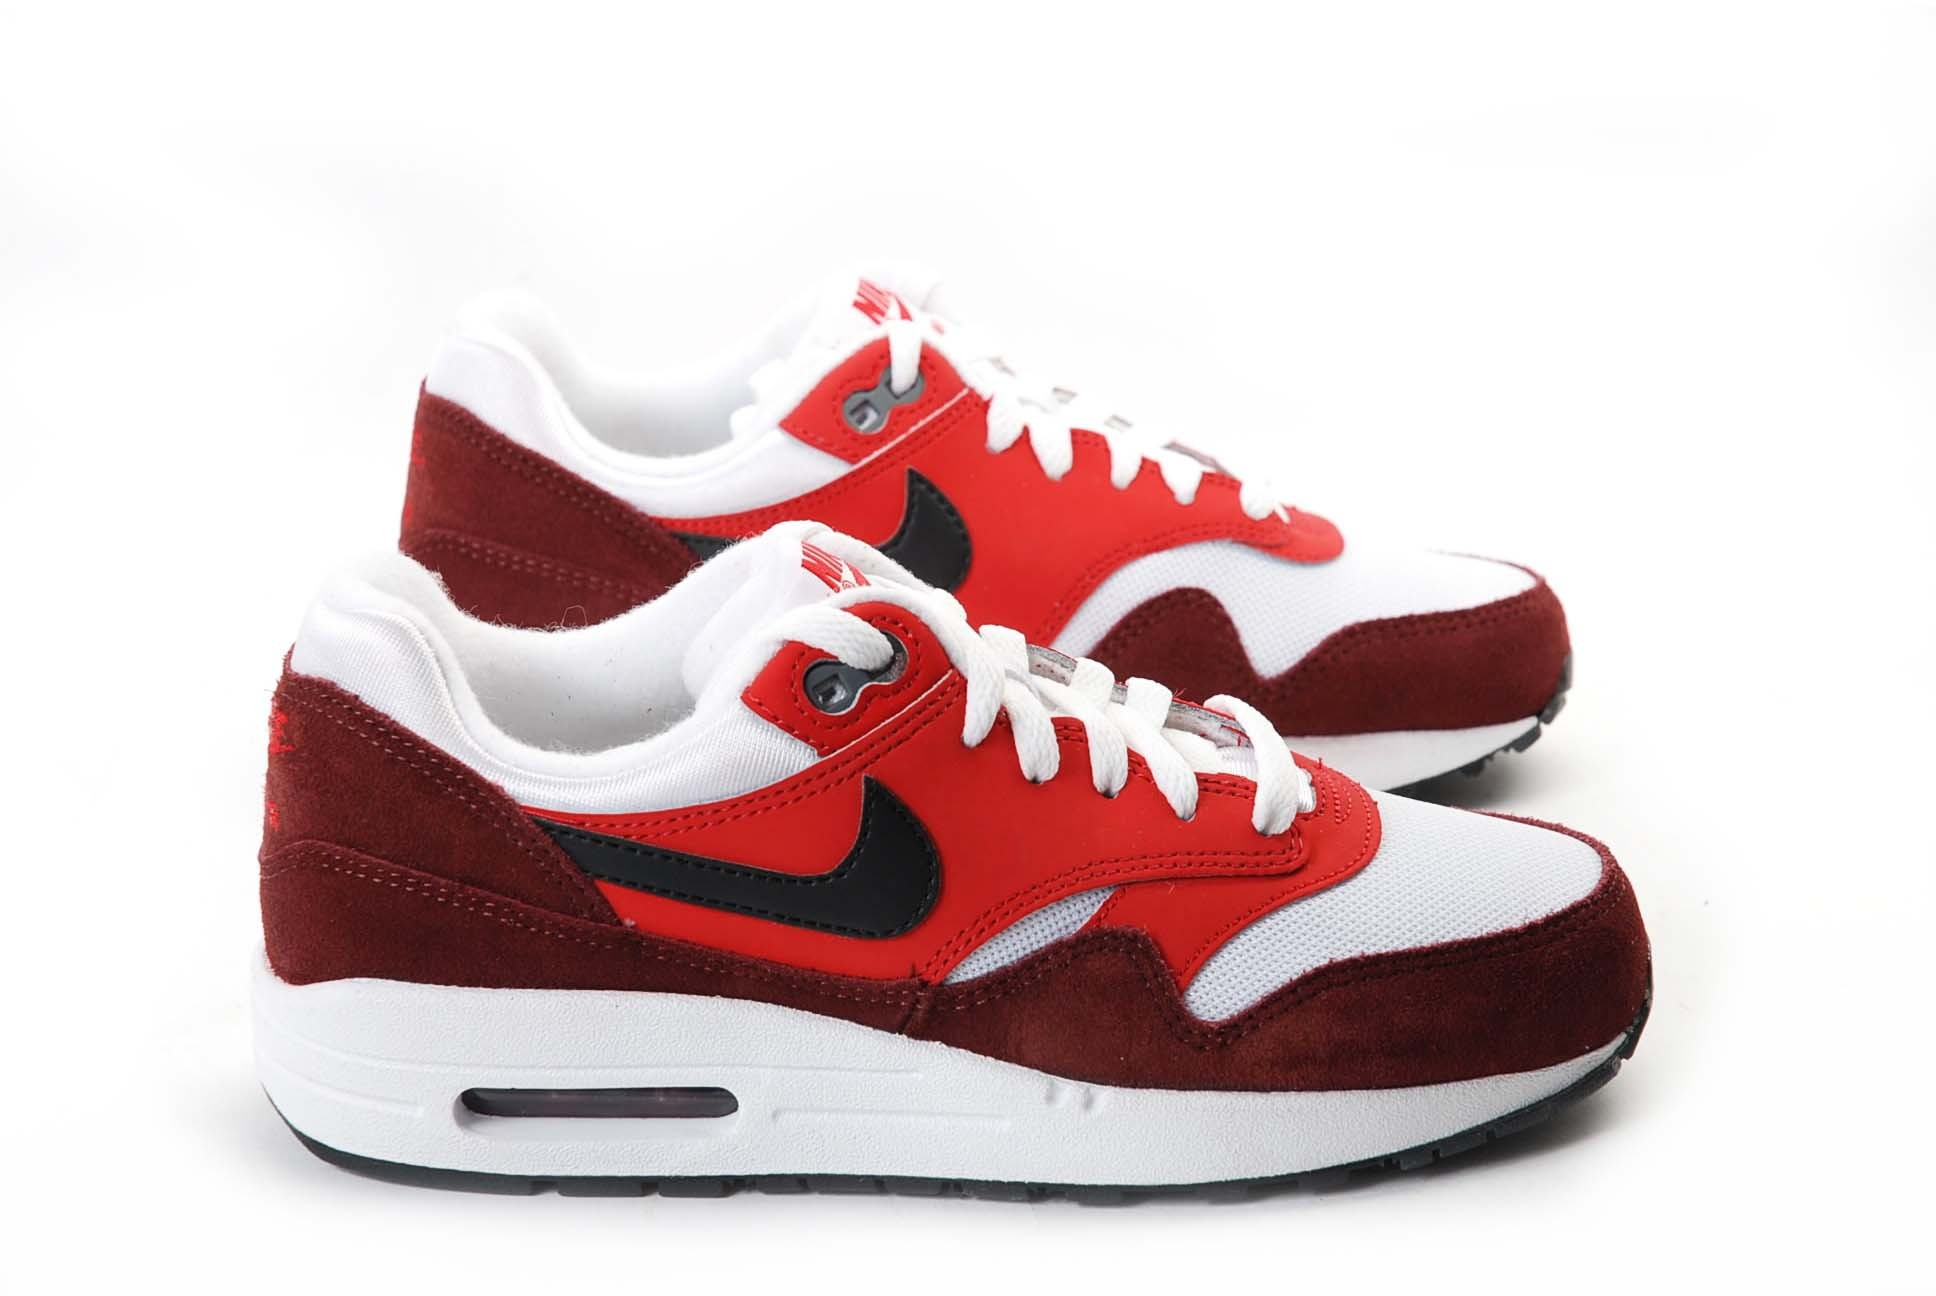 Cher Et Air Nike Blanc 24756 Chaussures Pas Max Rouge IYf6yb7vmg